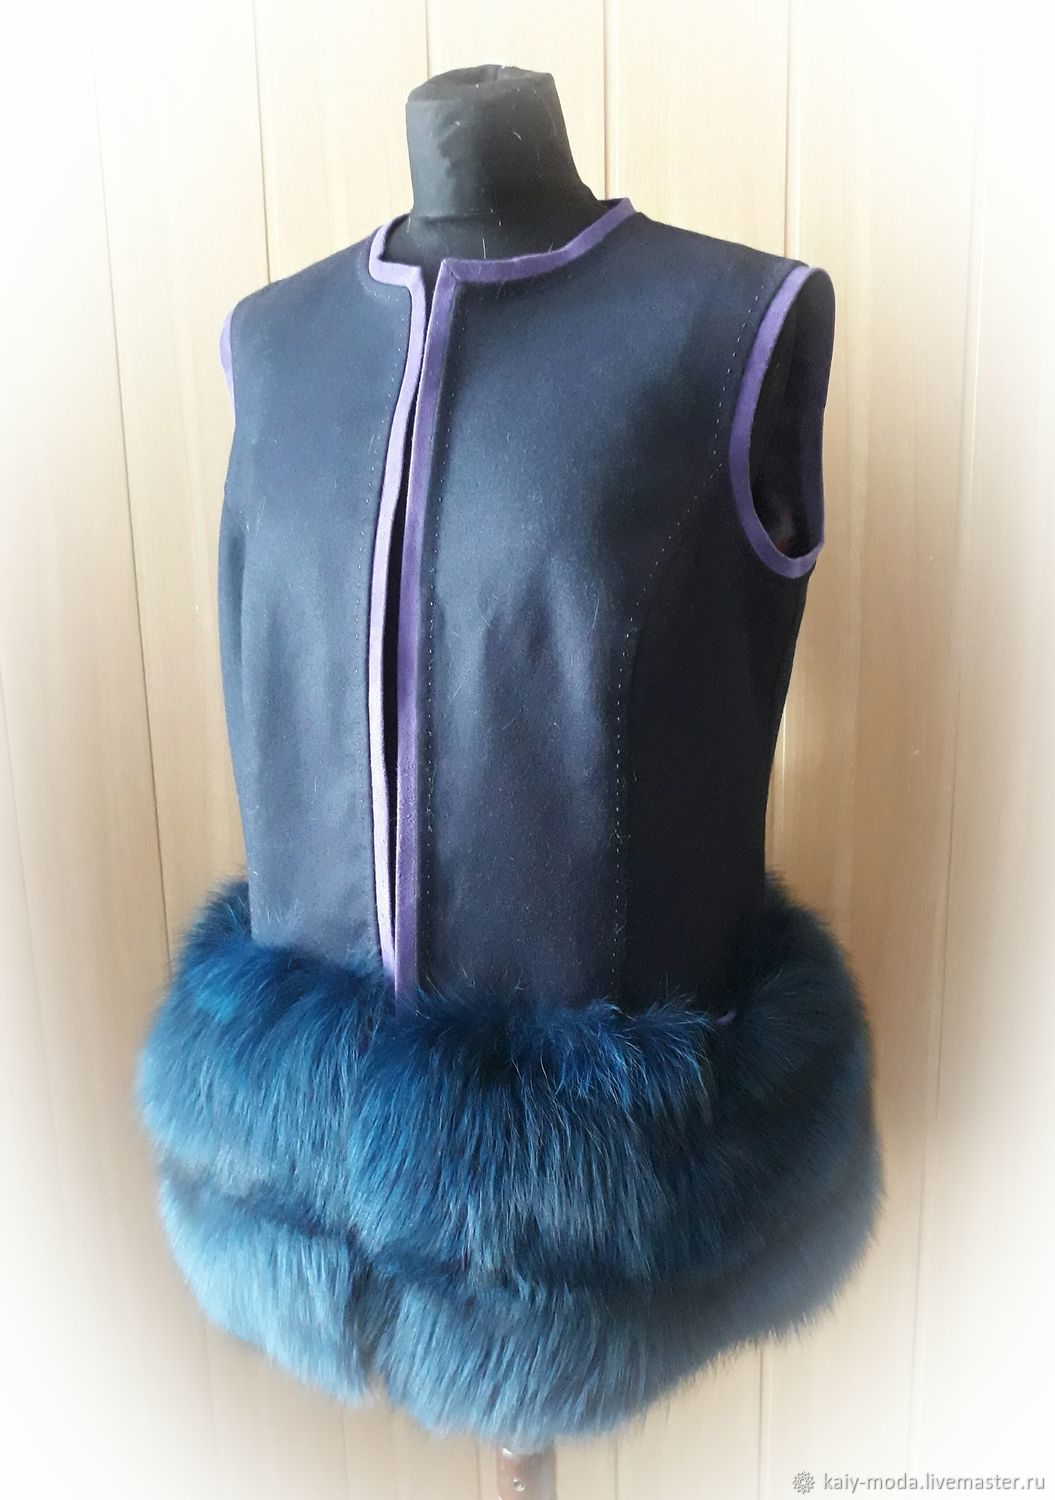 Cashmere vest with Fox fur, Vests, Moscow,  Фото №1